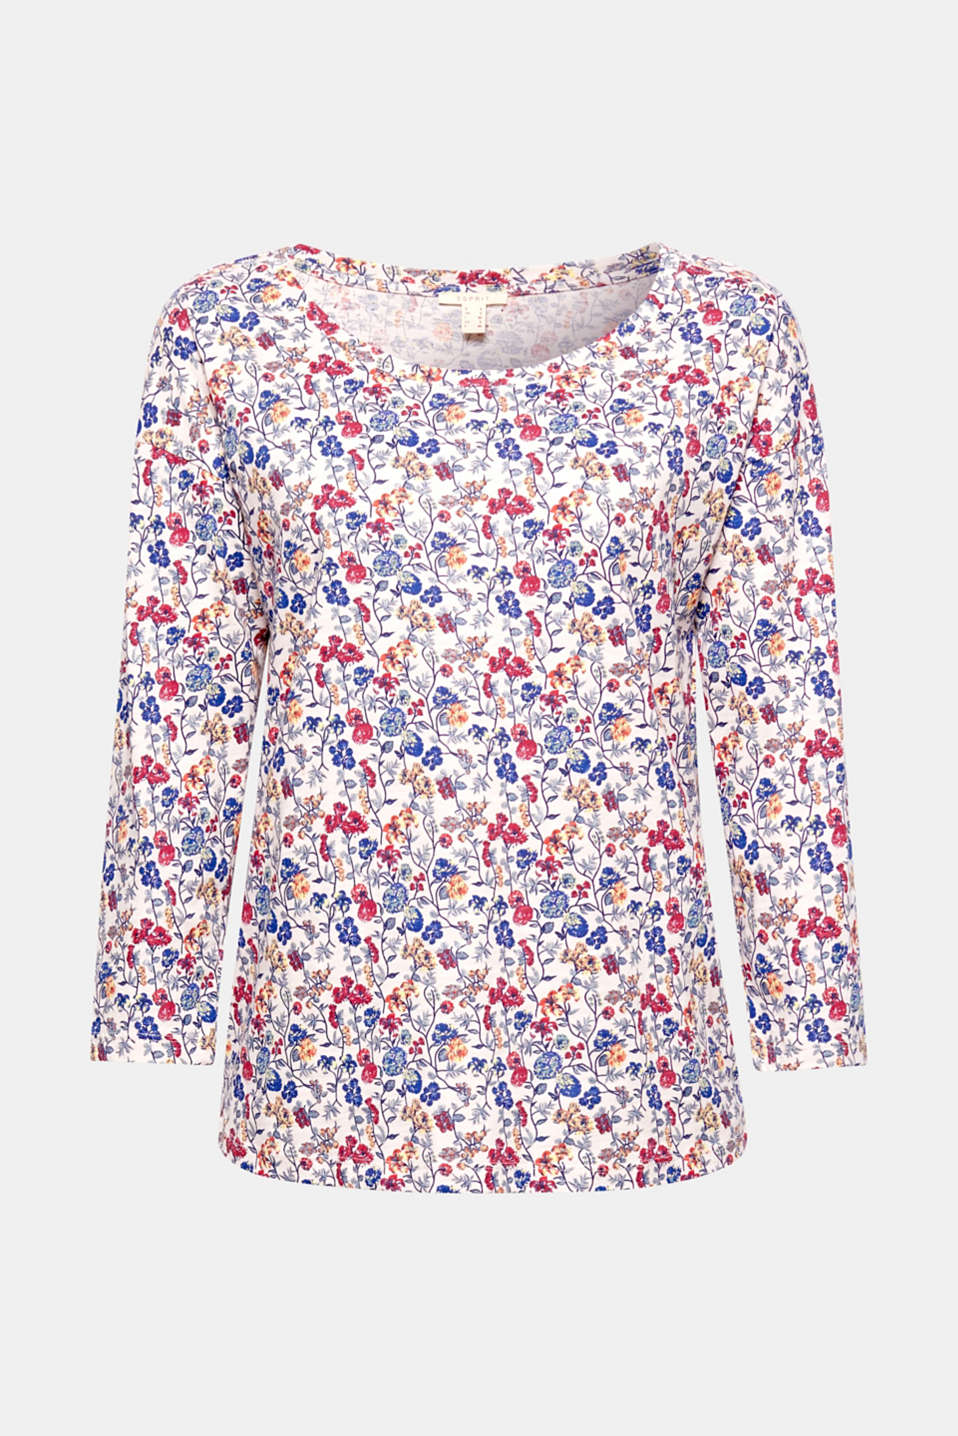 This is how spring looks: bright florals, litter effects and new cuts such as on this great cotton T-shirt!